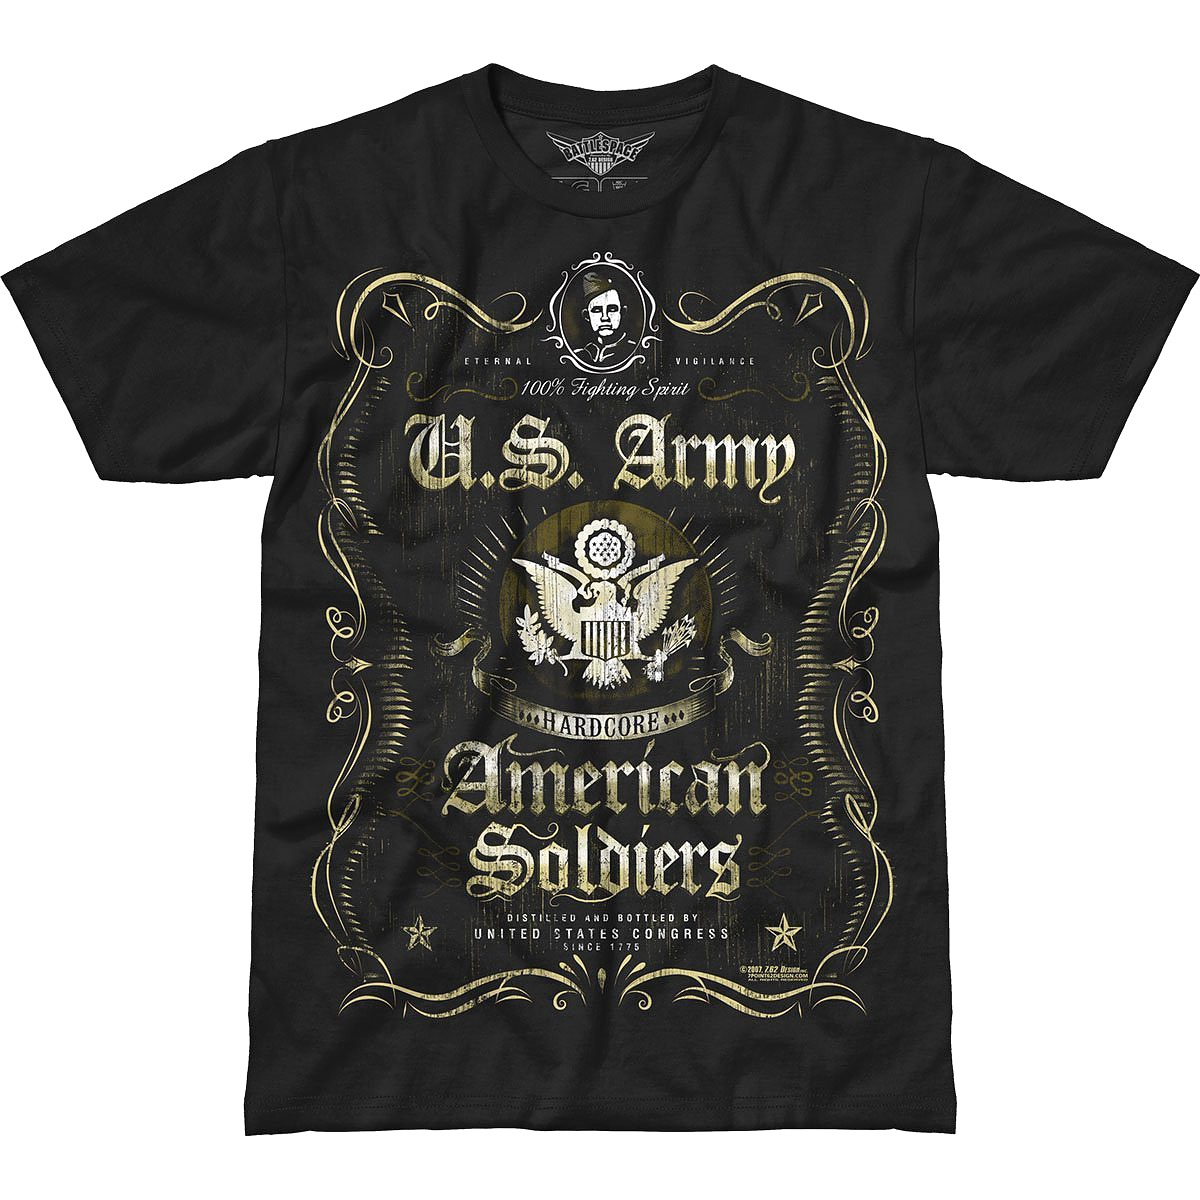 Design us army tee fighting spirit battlespace t for Army design shirts online